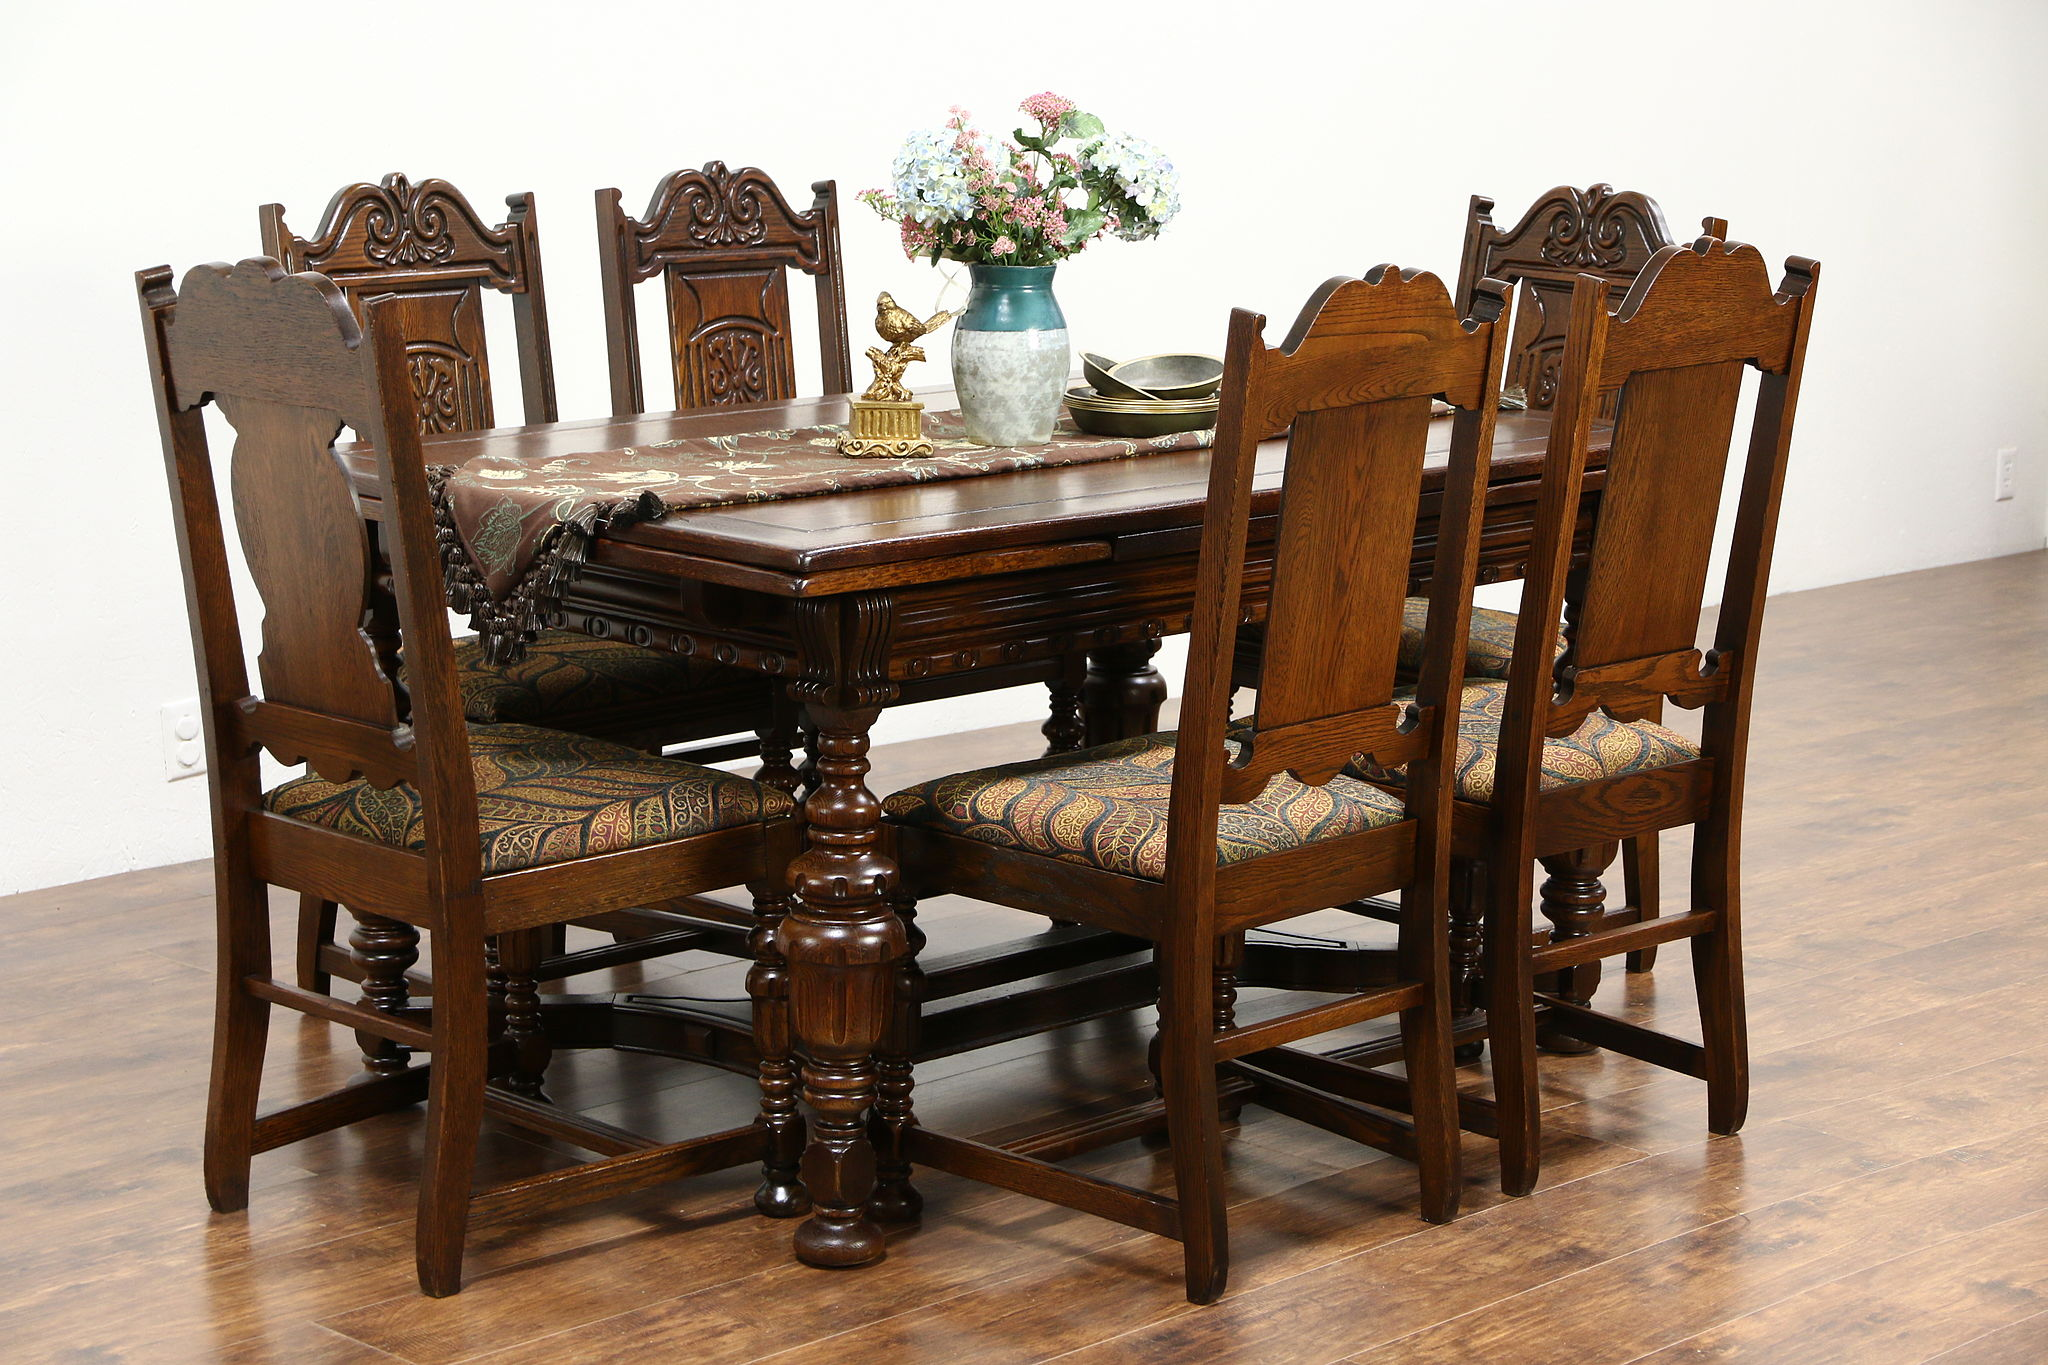 Tudor 1925 Antique Carved Oak Dining Set, Table, 6 Chairs, New Upholstery